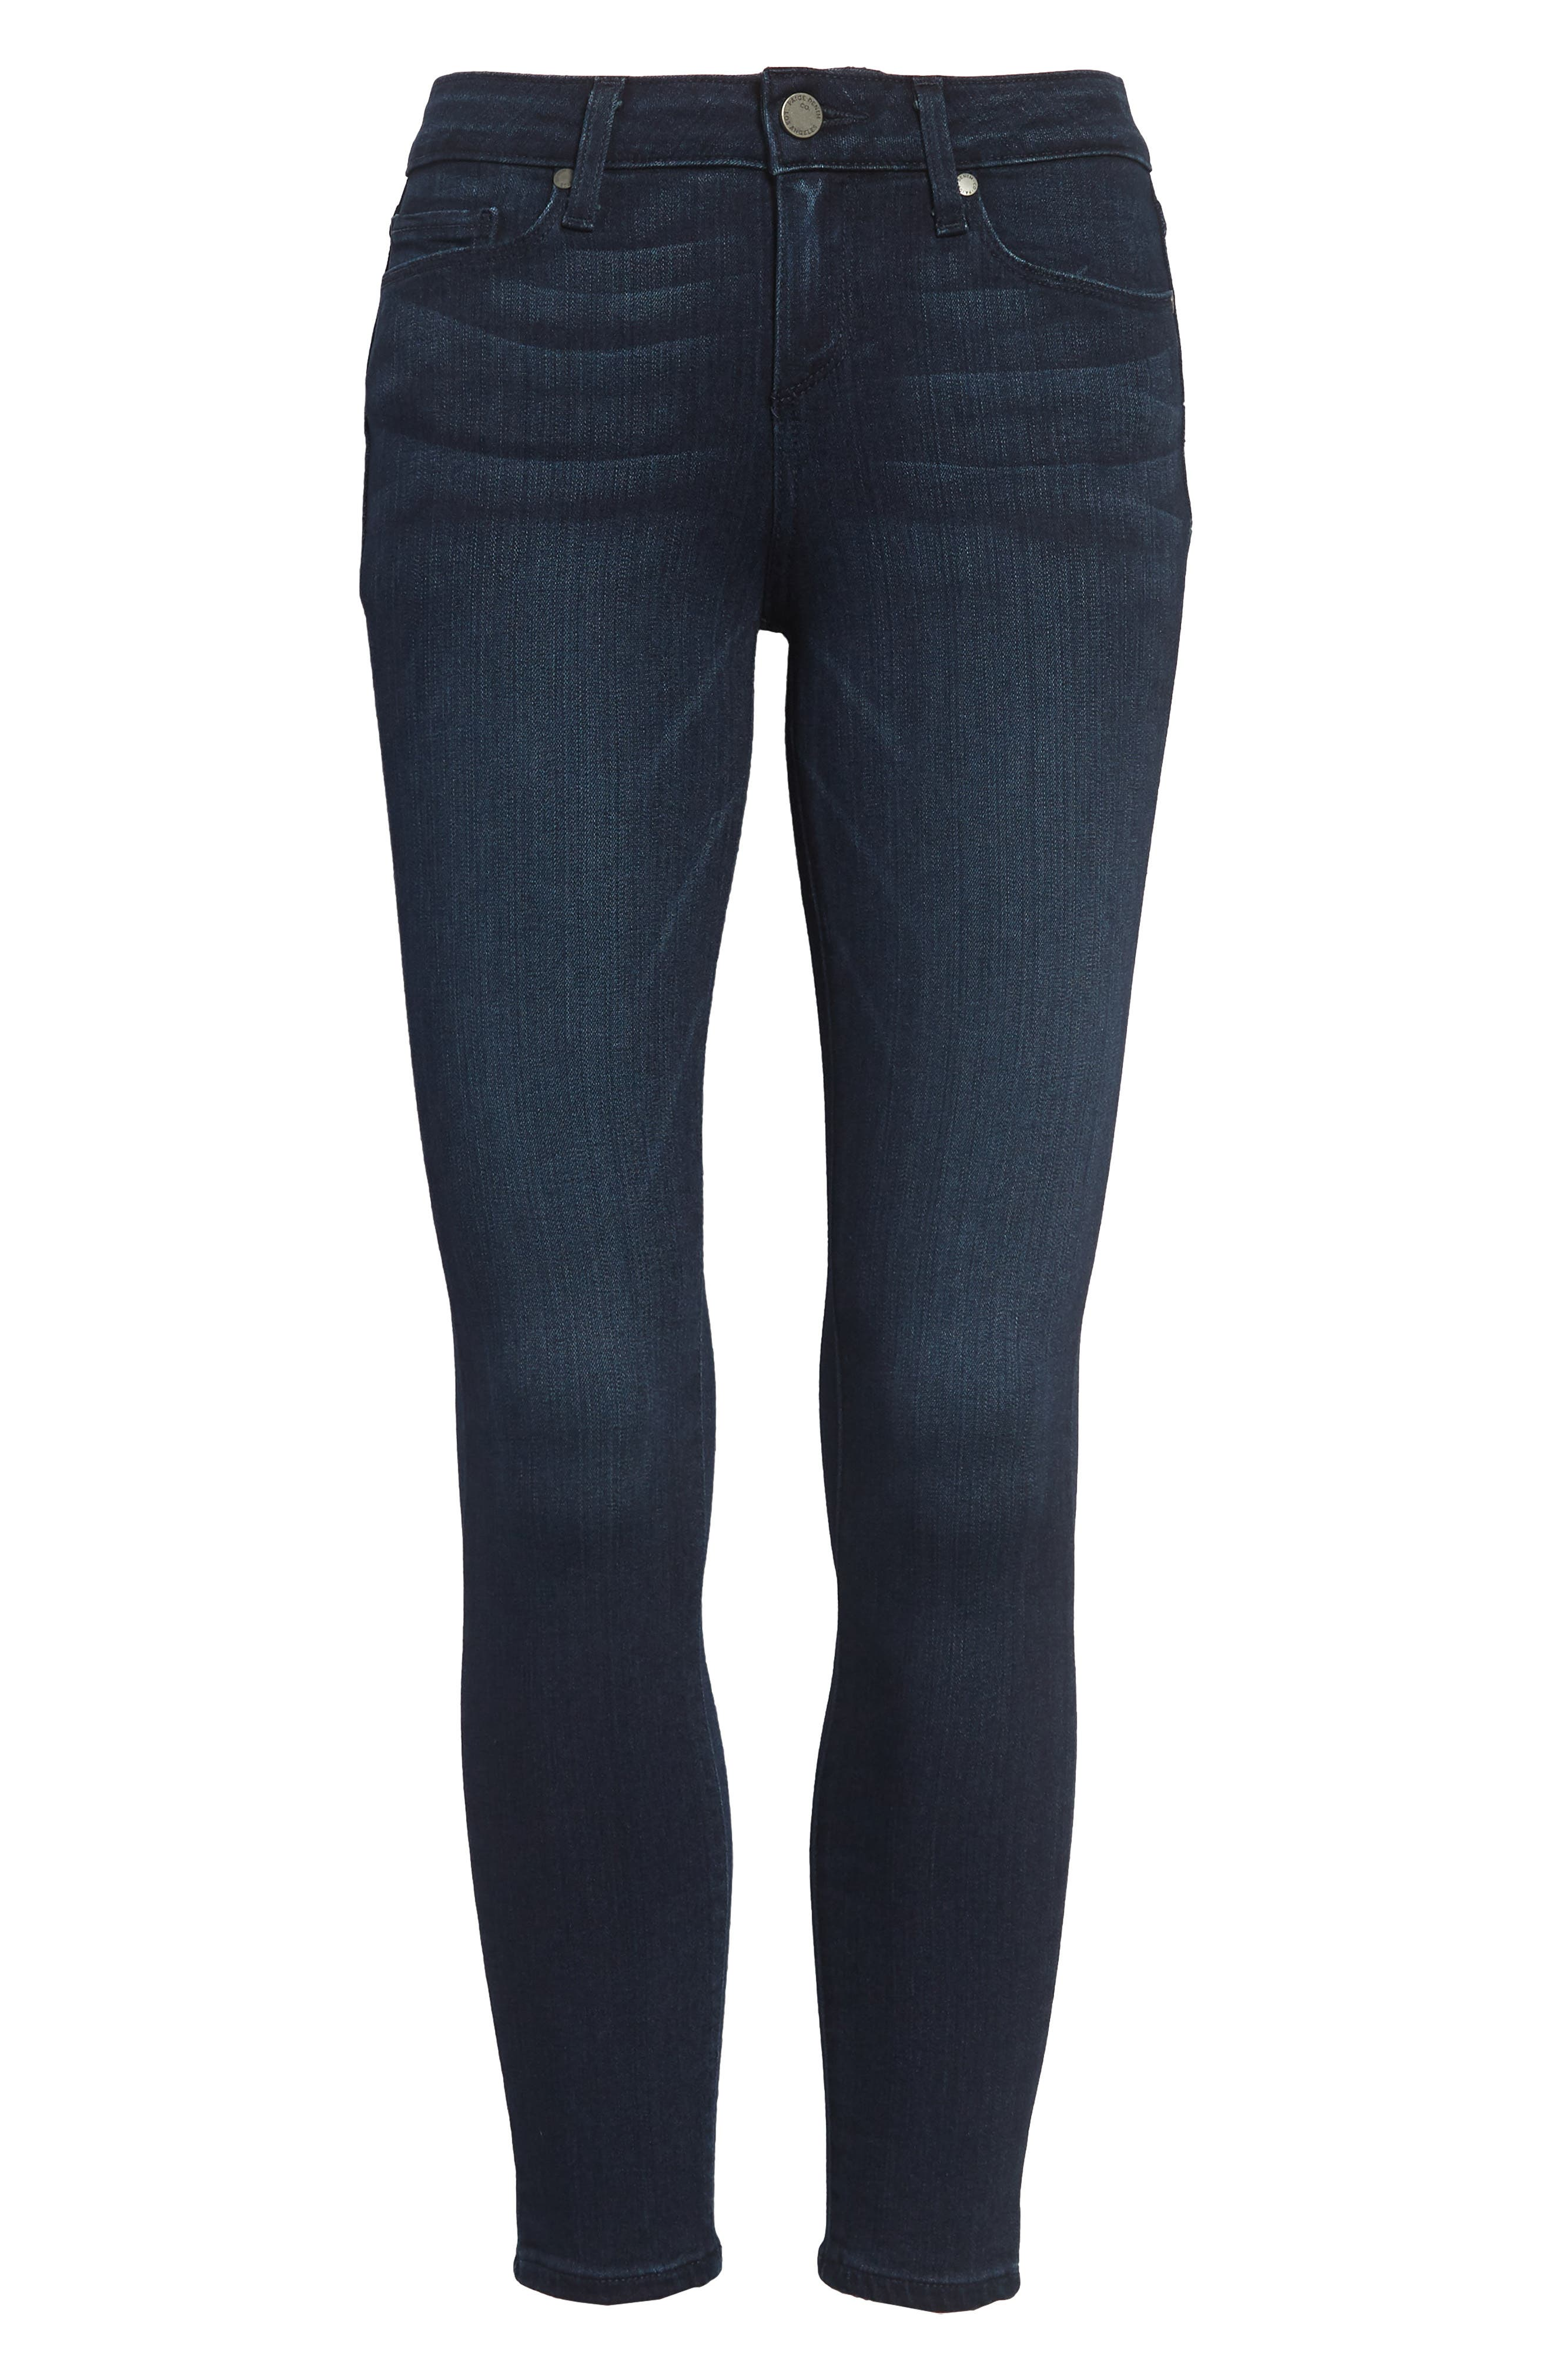 PAIGE,                             Transcend - Verdugo Crop Skinny Jeans,                             Main thumbnail 1, color,                             MIDLAKE